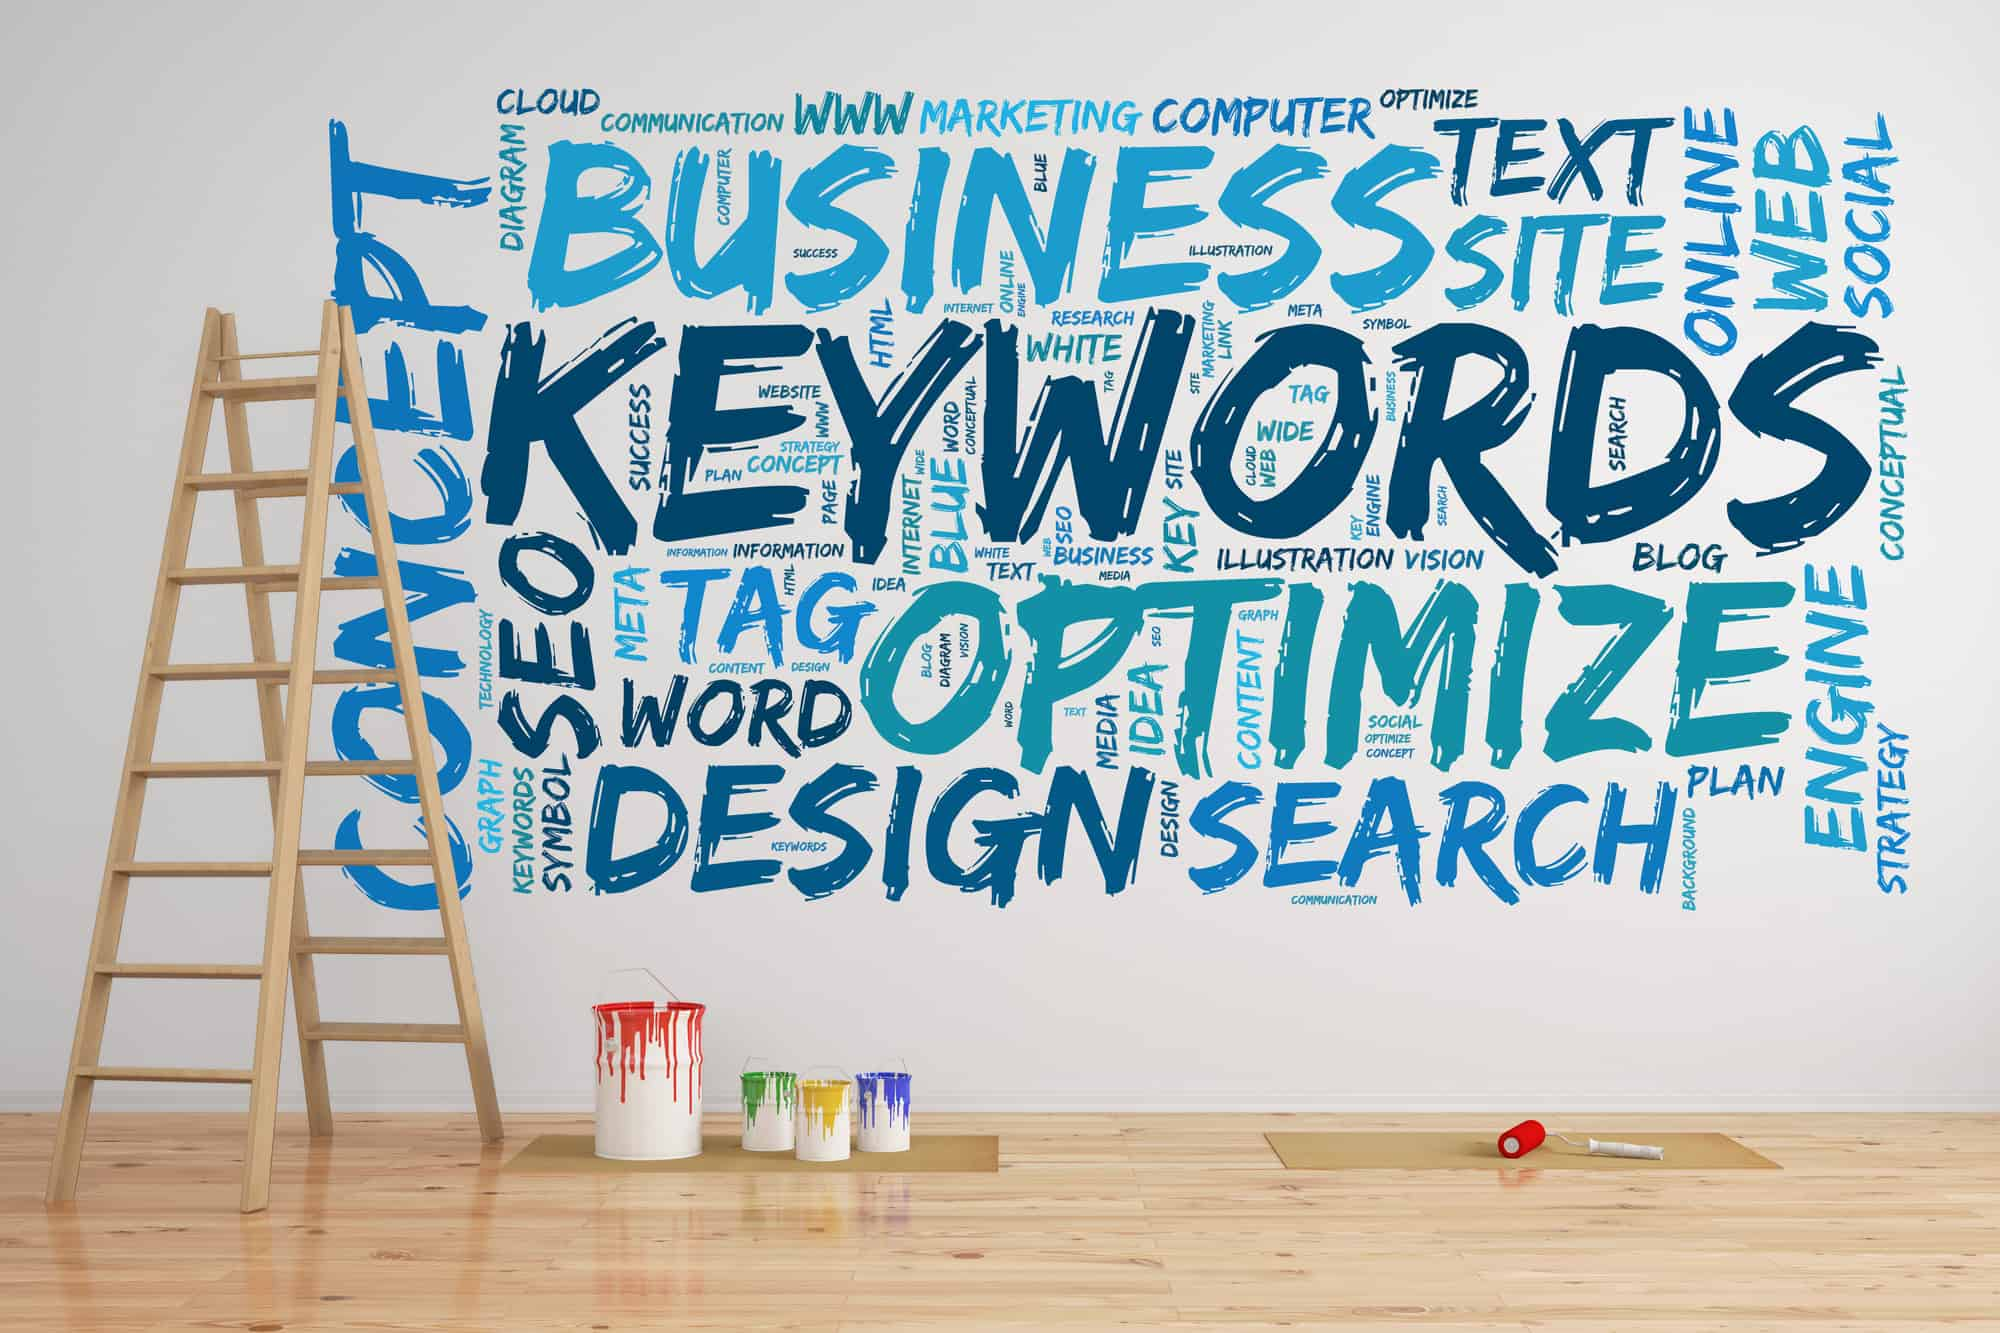 Aaron Vick - 5 Reasons Why SEO Marketing Is Crucial For Your Business' Success